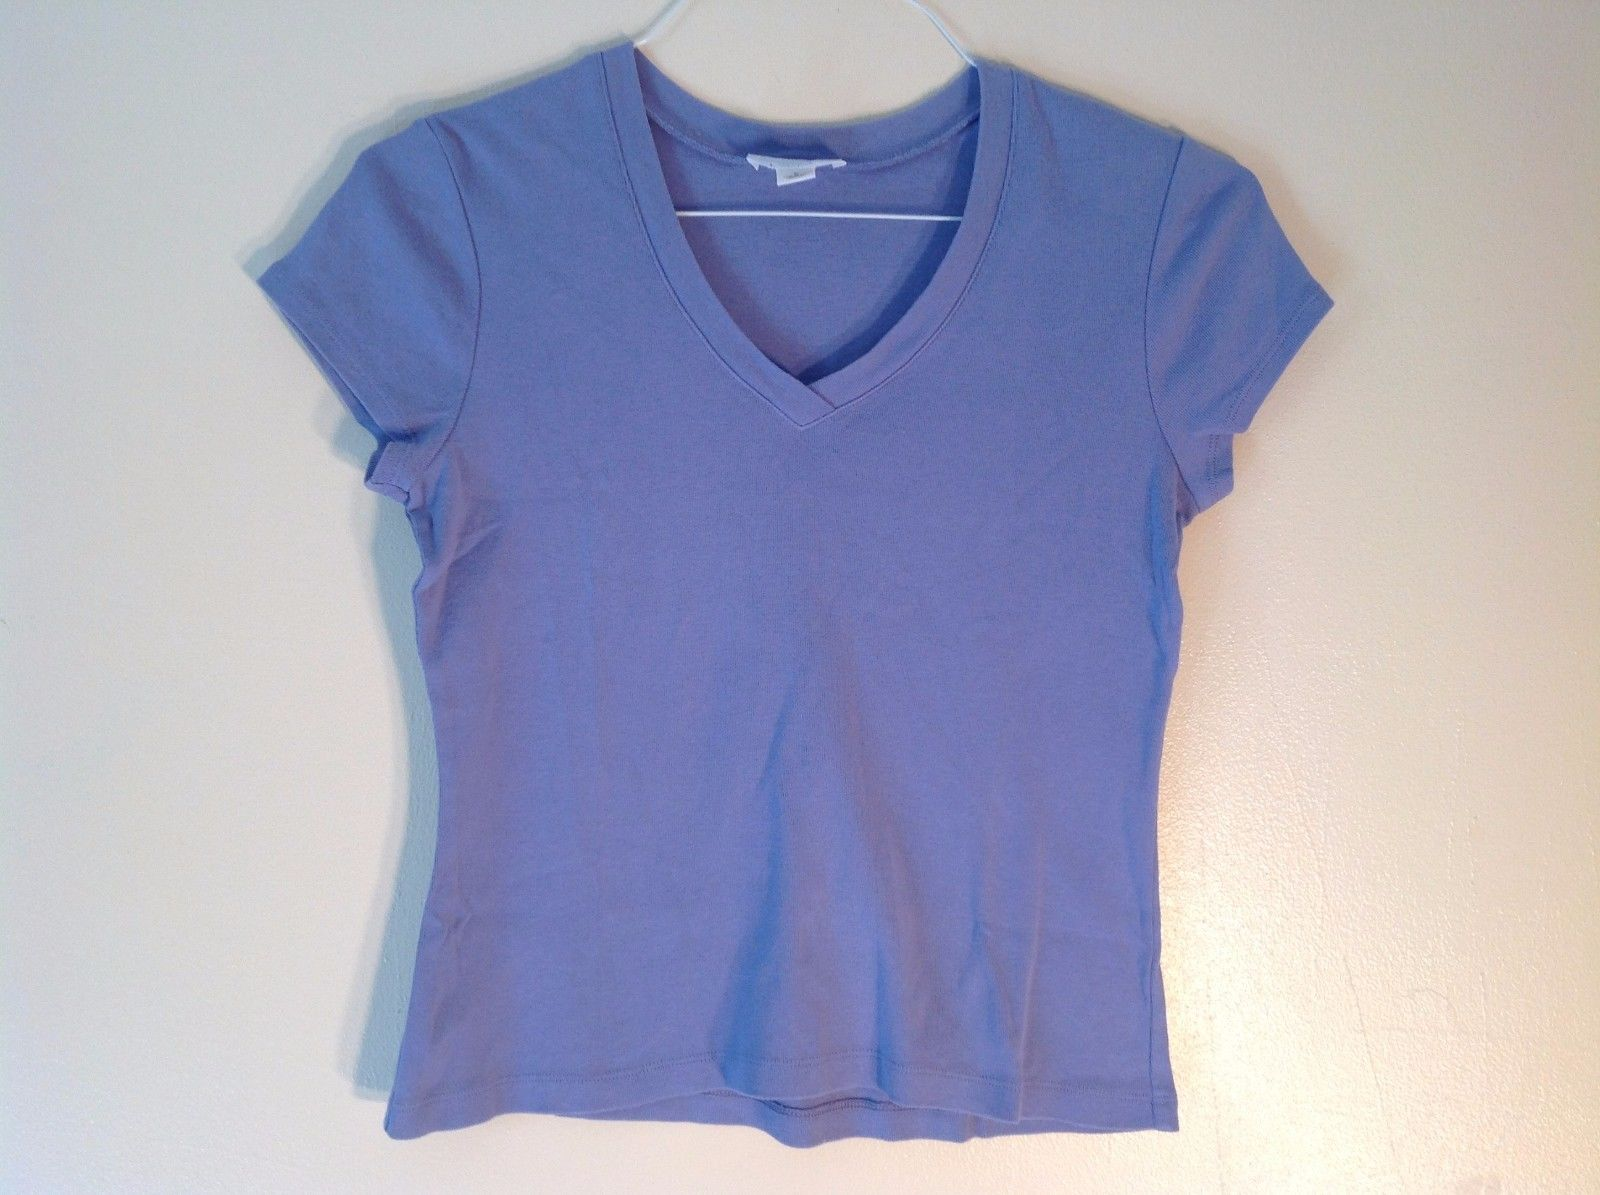 Ann Taylor LOFT 100% Cotton Small Lilac Periwinkle V-neck Short Sleeve T-Shirt